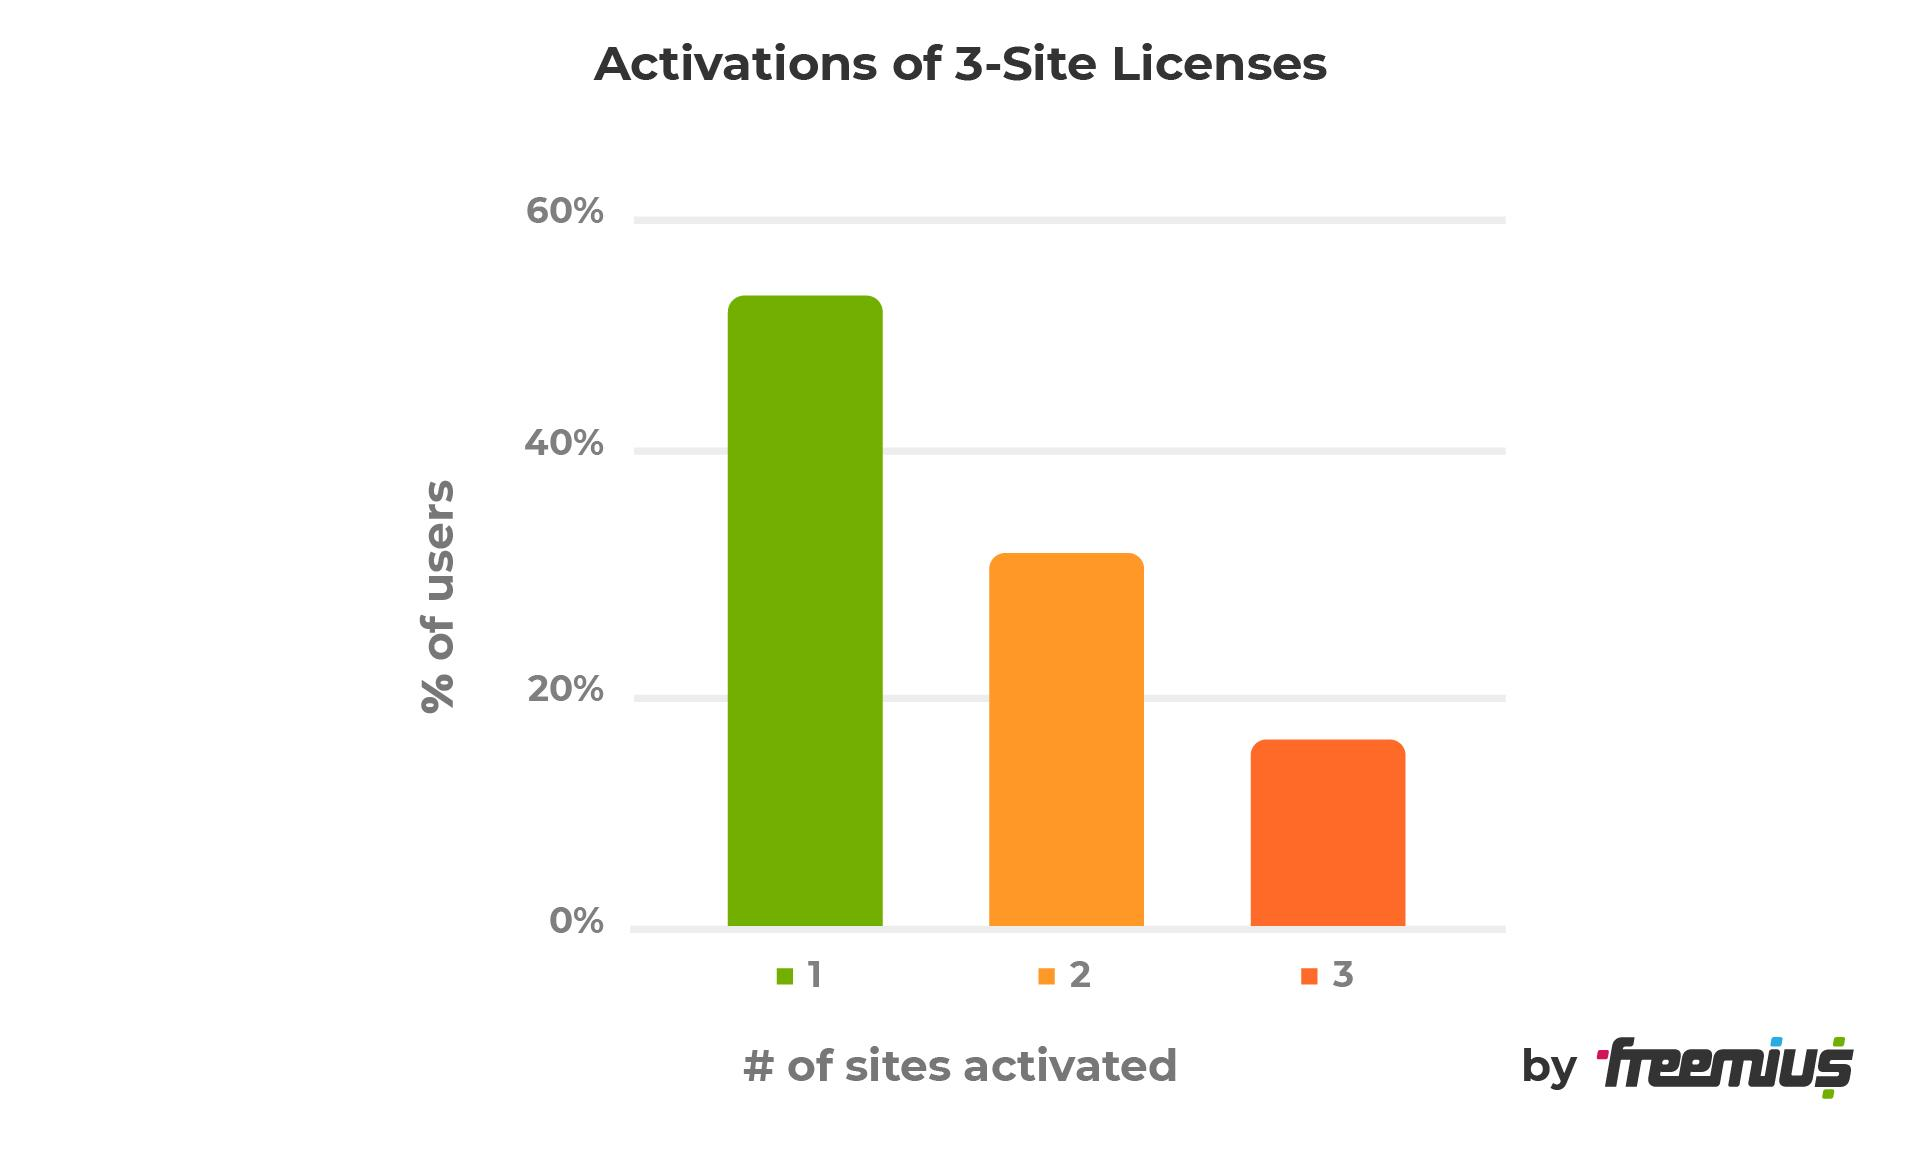 Activations of 3-site licenses